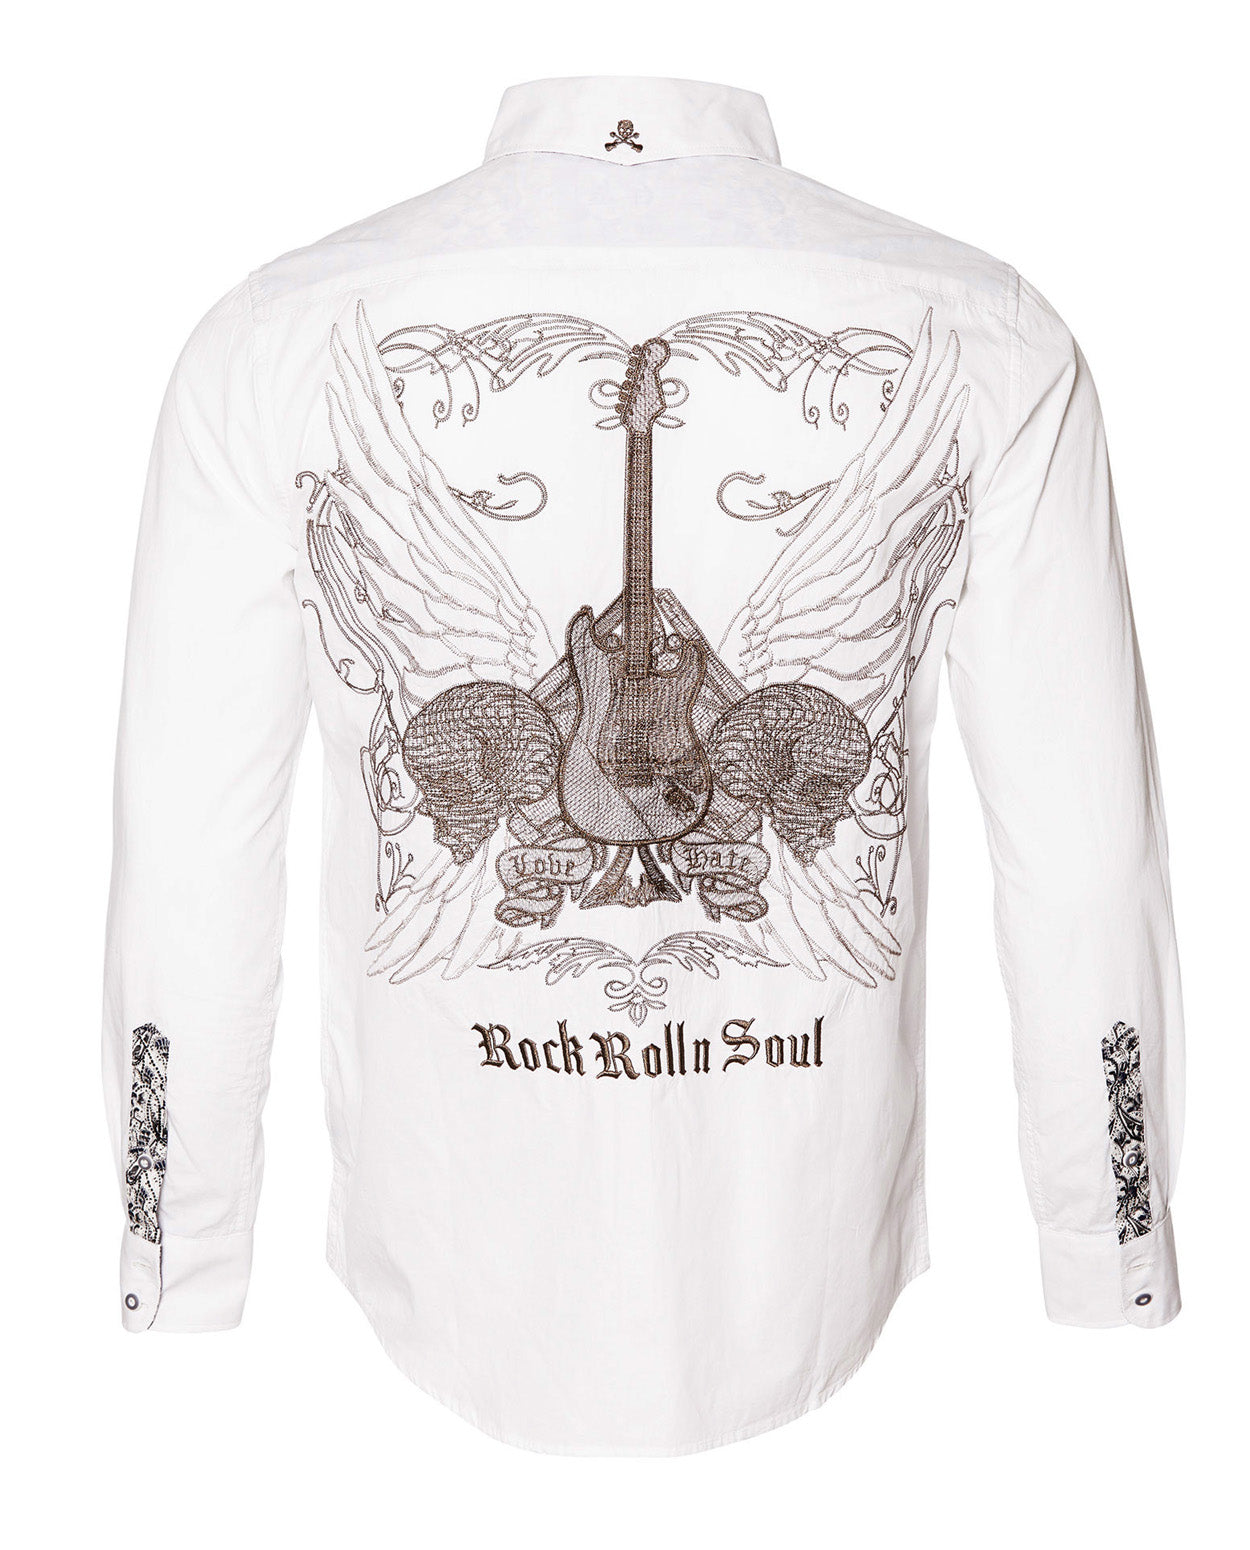 Men's Casual Fashion Button Up Shirt - Love Hate by Rock Roll n Soul